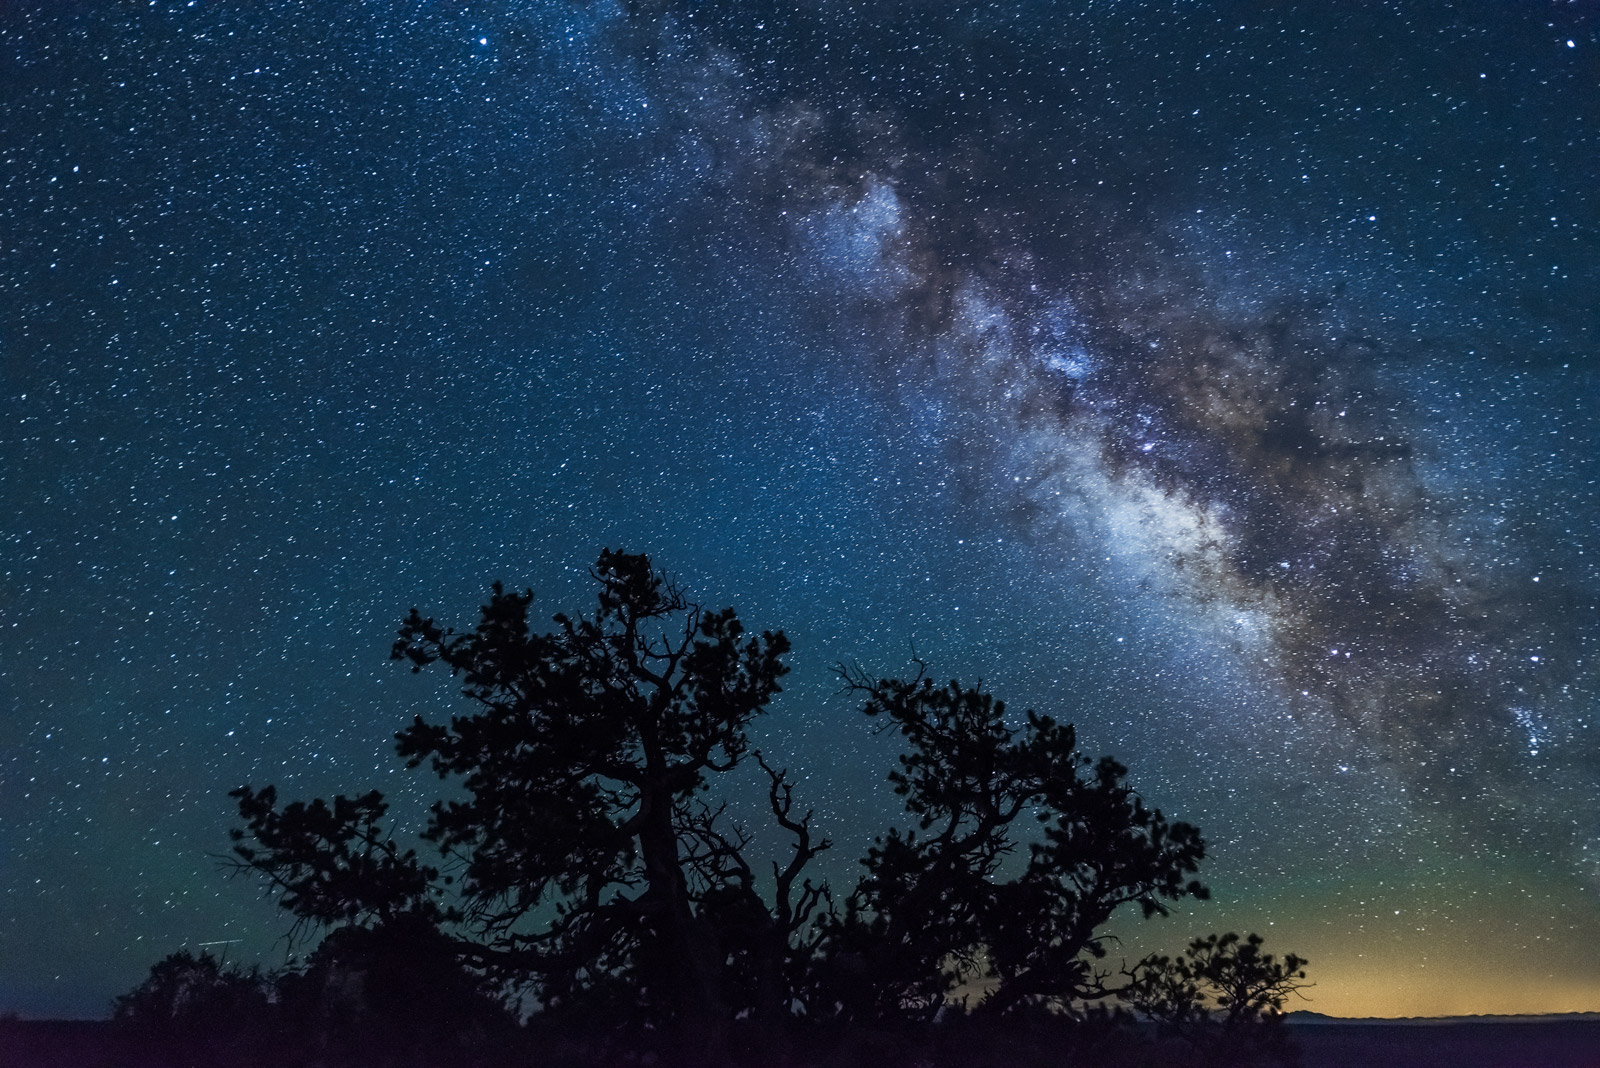 A Limited Edition, Fine Art photograph of the stars of the Milky Way over trees during a wonderous night at the Grand Canyon...